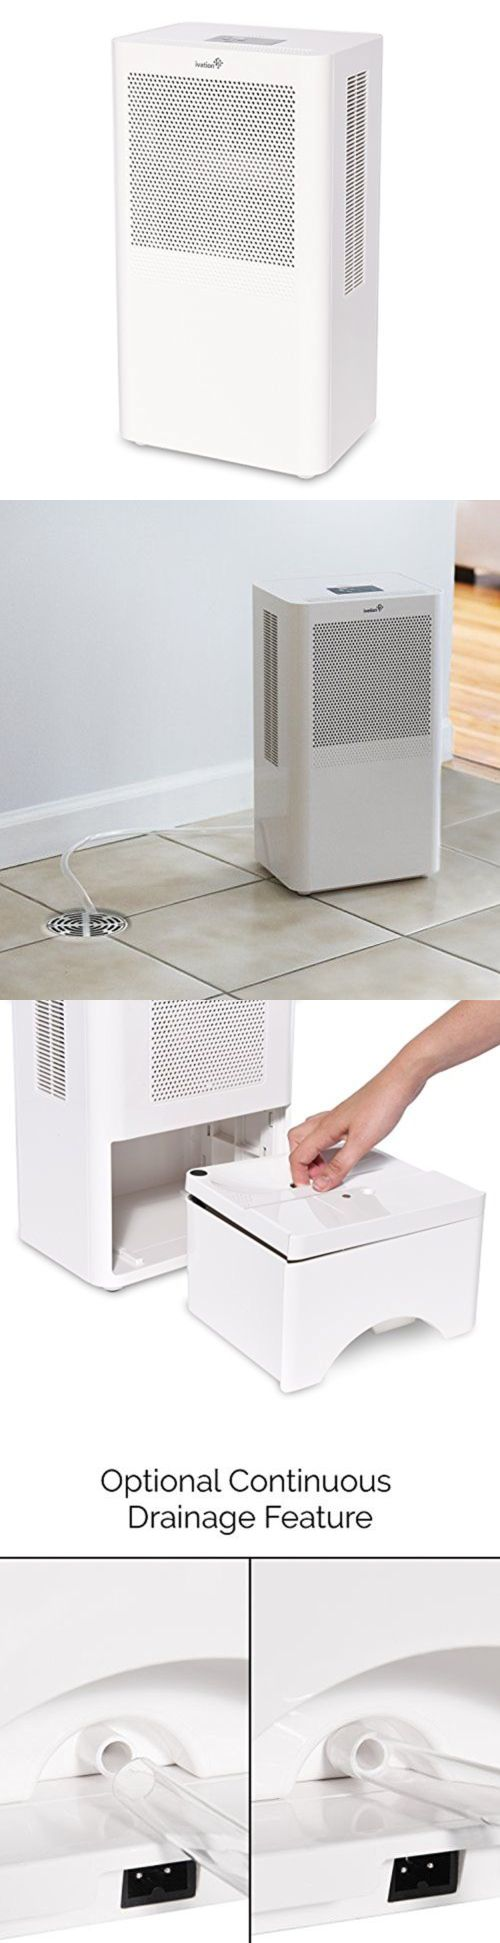 Dehumidifiers 79621: Ivation Small-Area Compact Dehumidifier